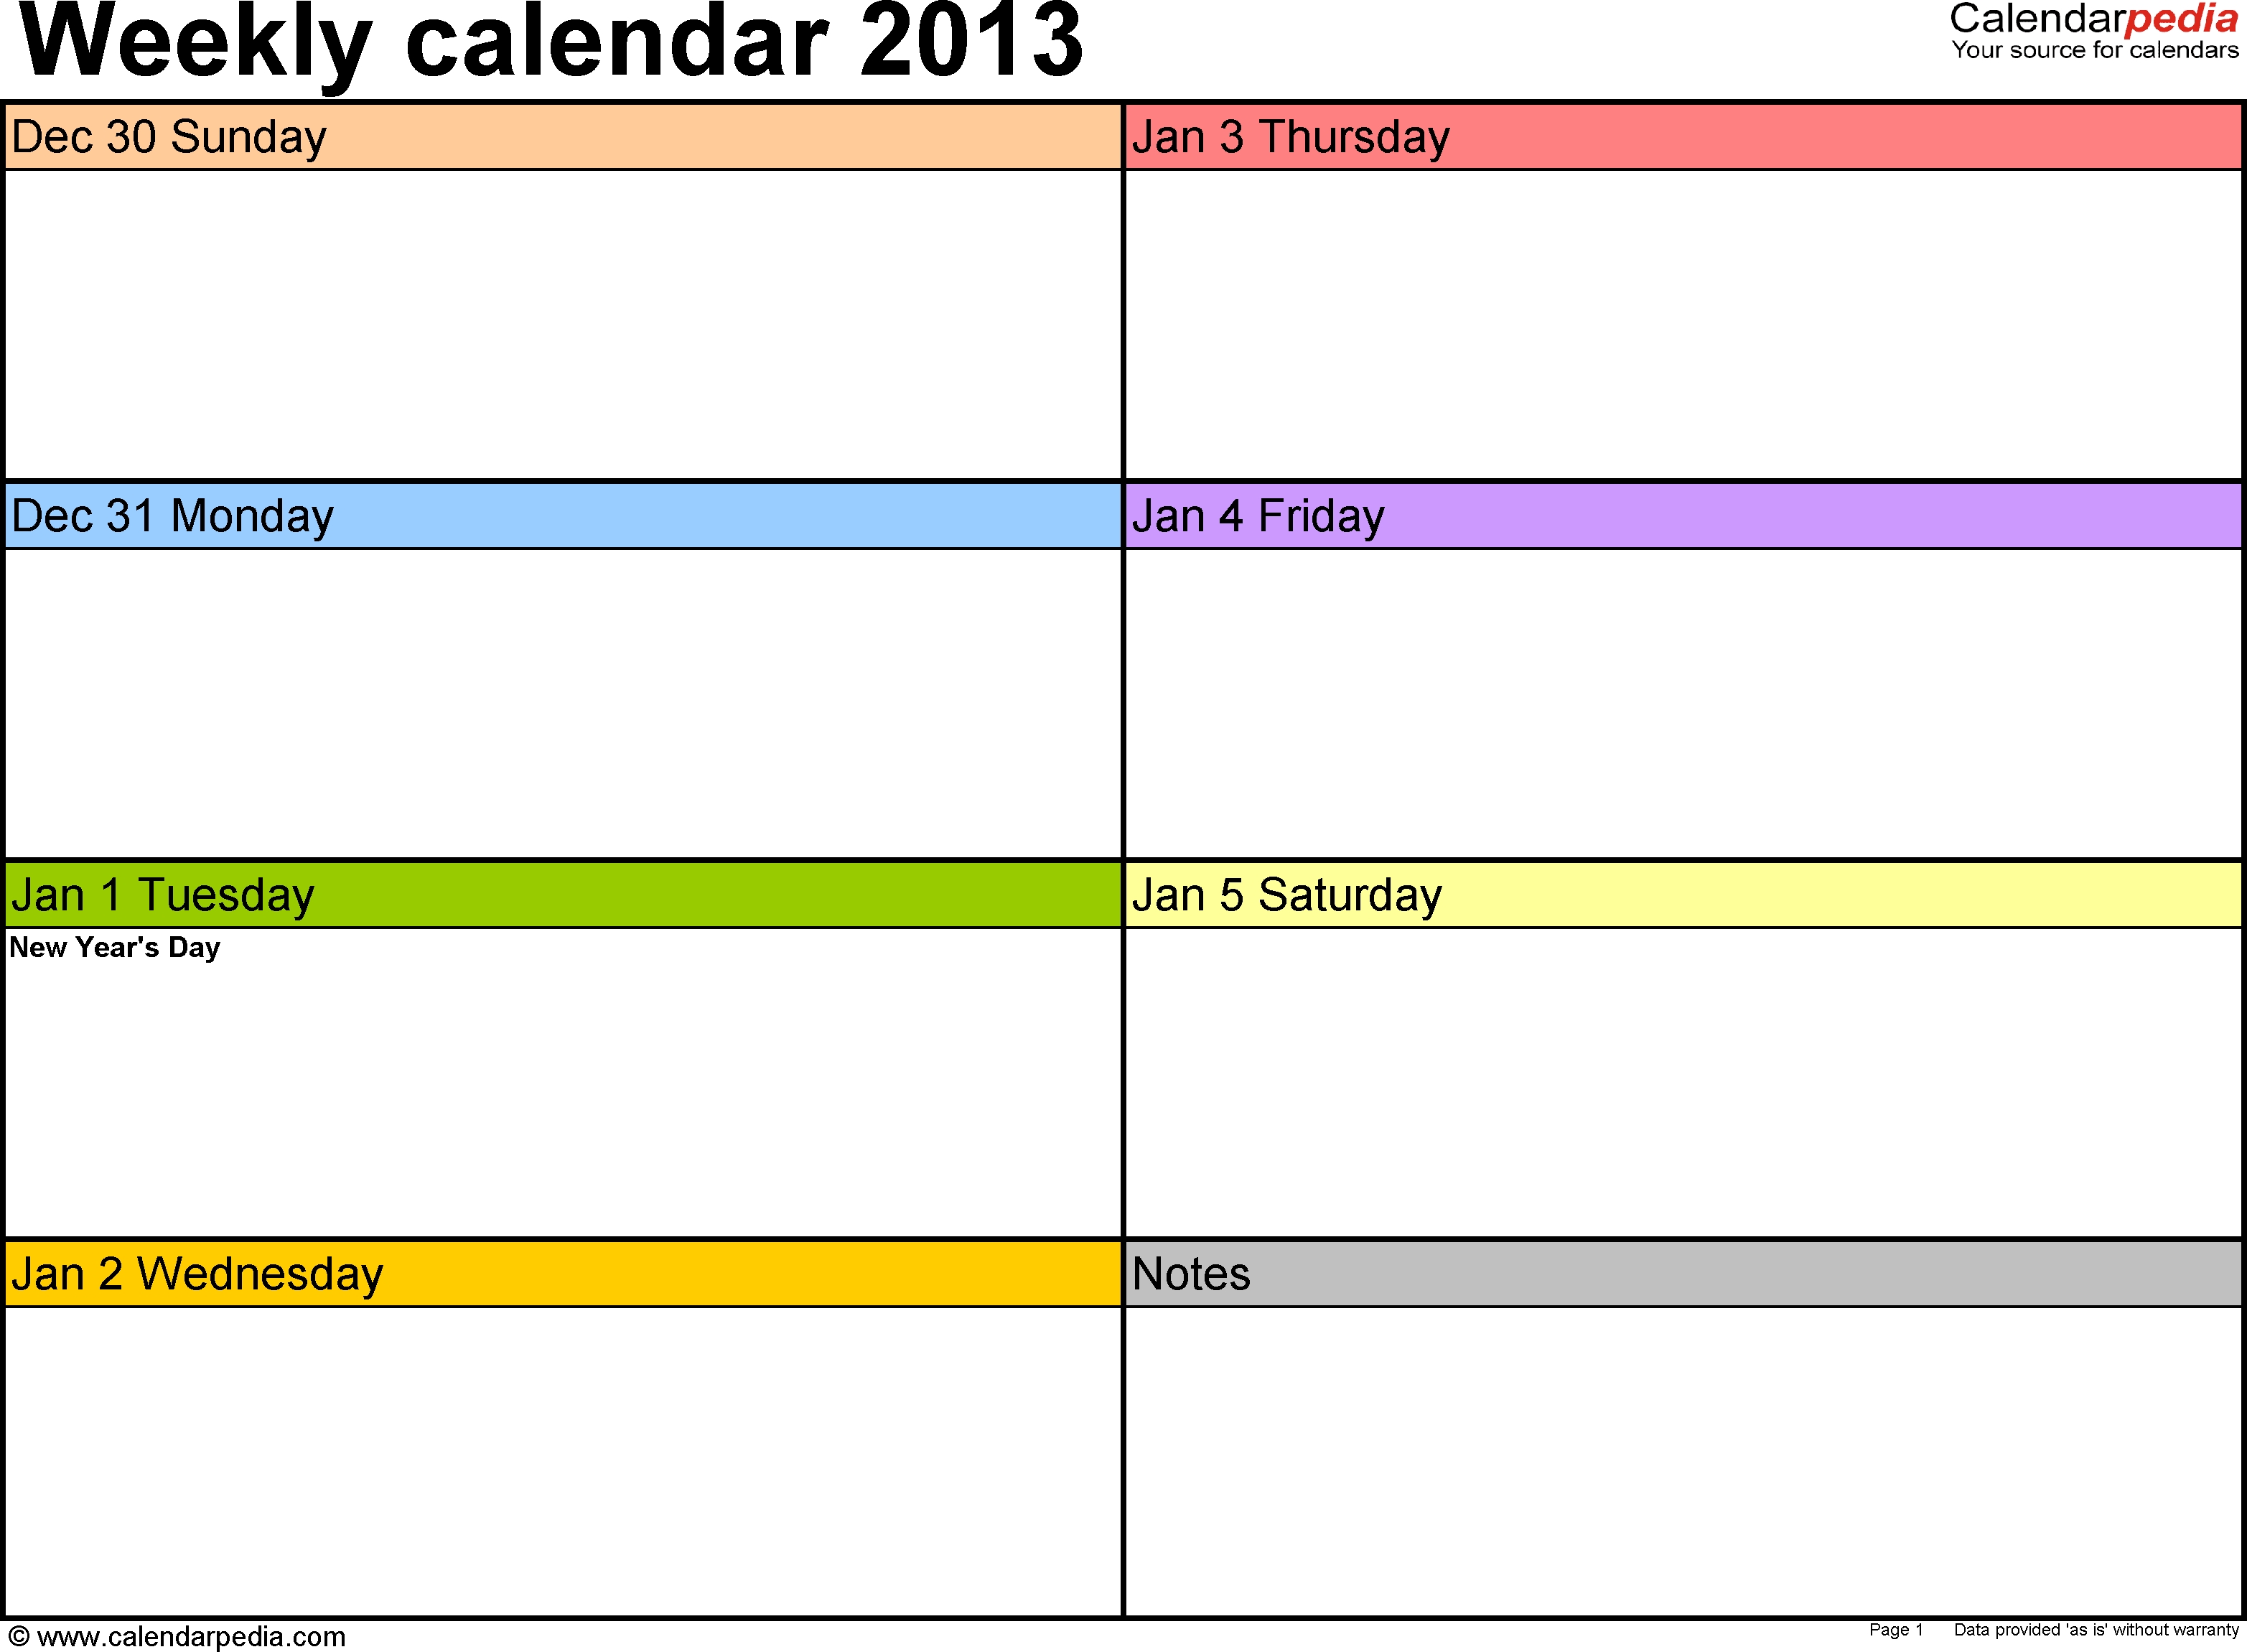 Weekly Calendar 2013 For Pdf 4 Free Printable Templates